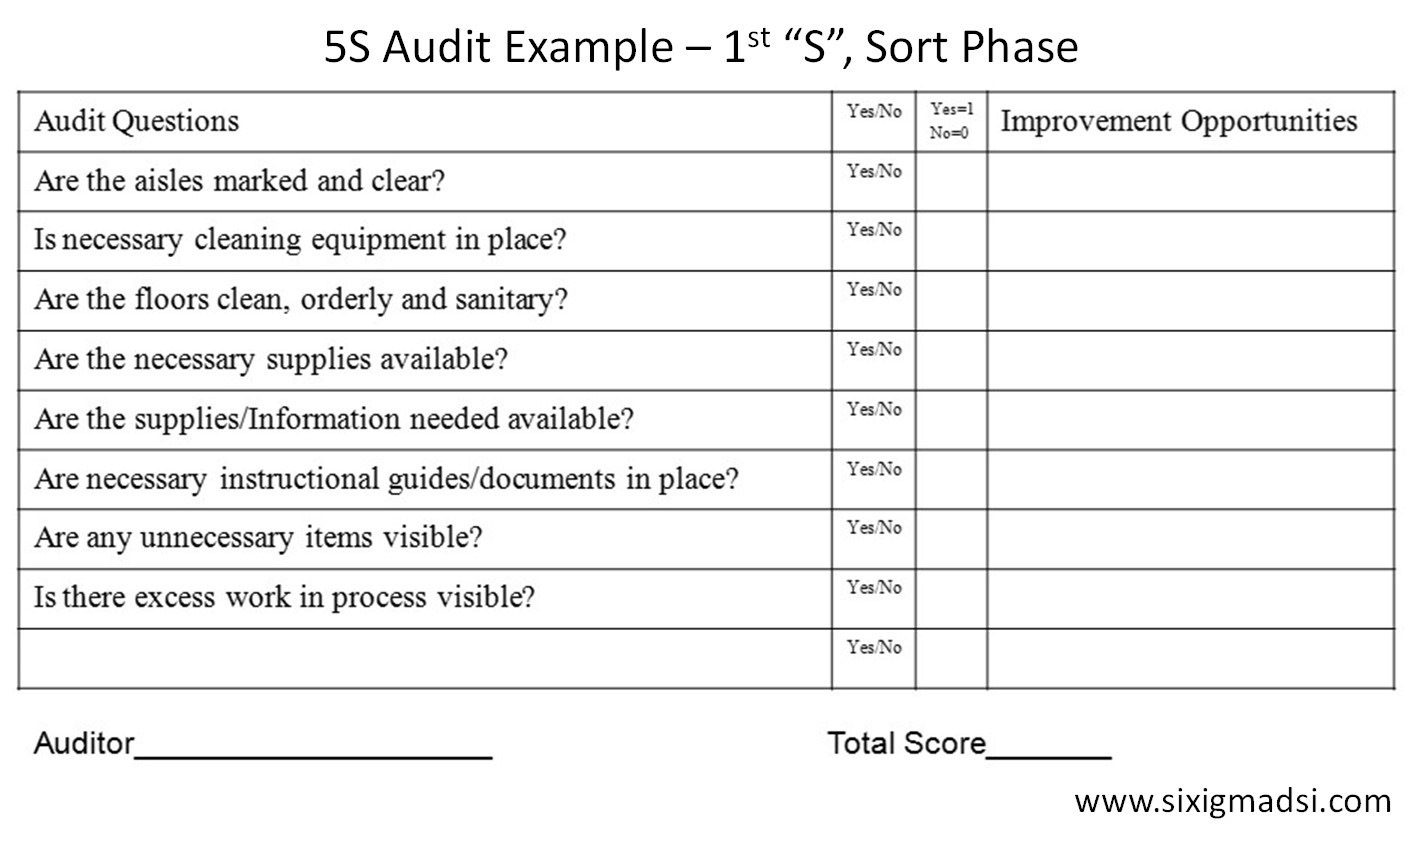 Guide to Implementing 5S